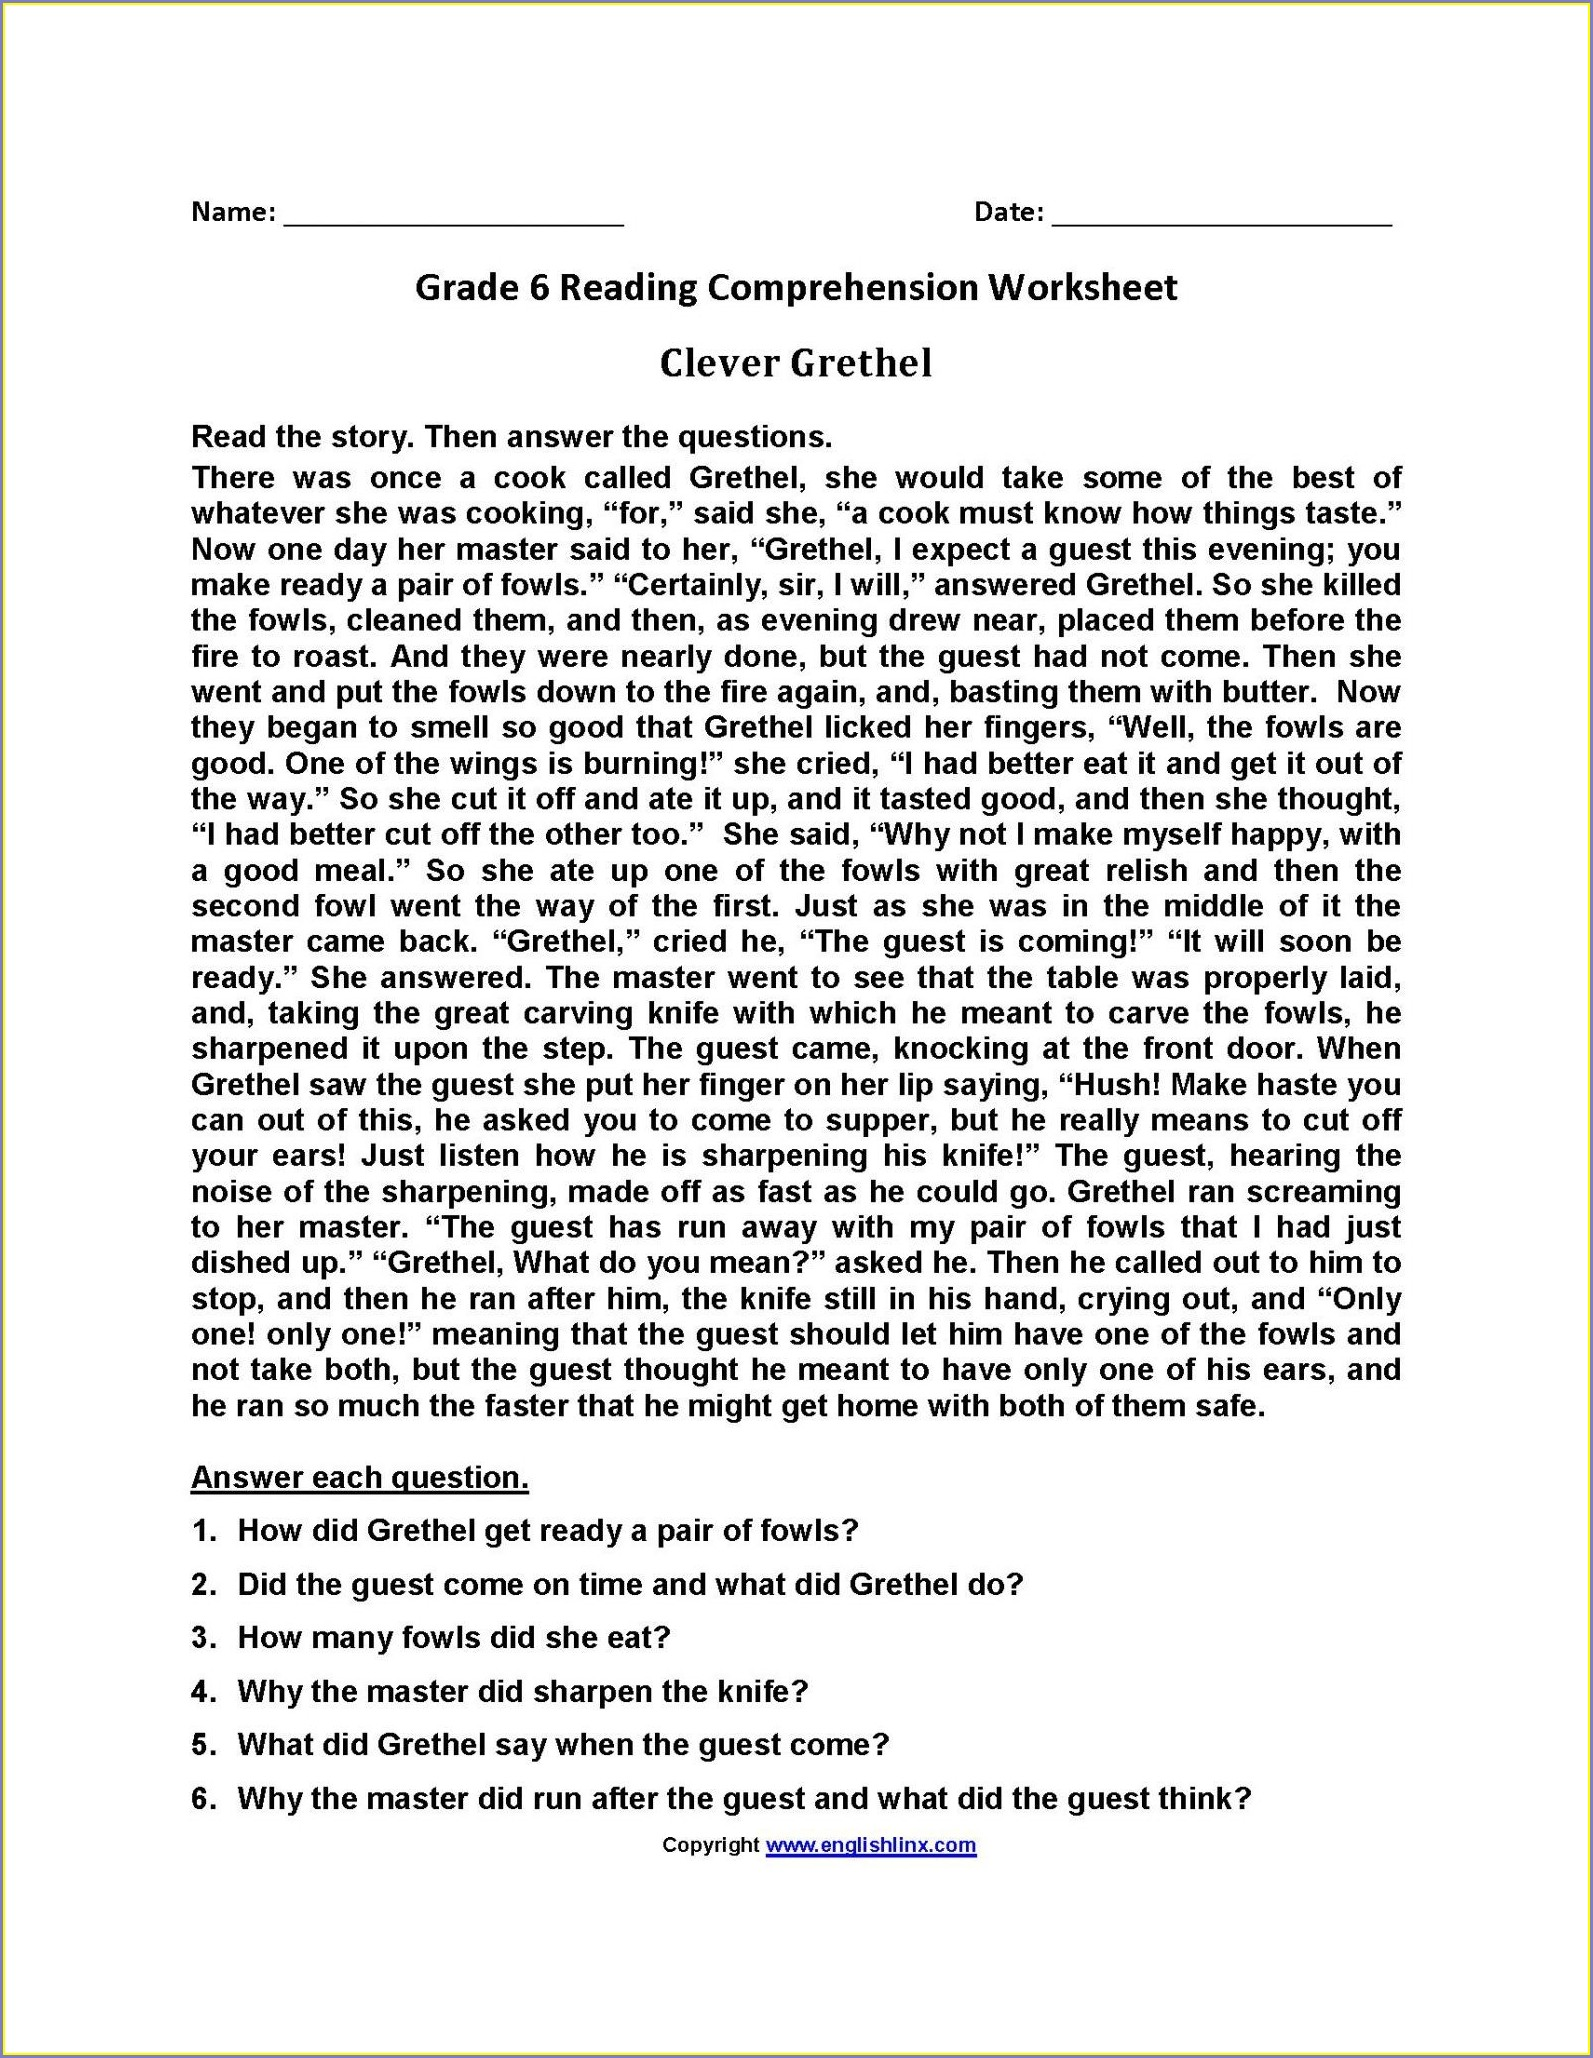 Printable 3rd Grade Printable Reading Comprehension Worksheets For Grade 3 Pdf